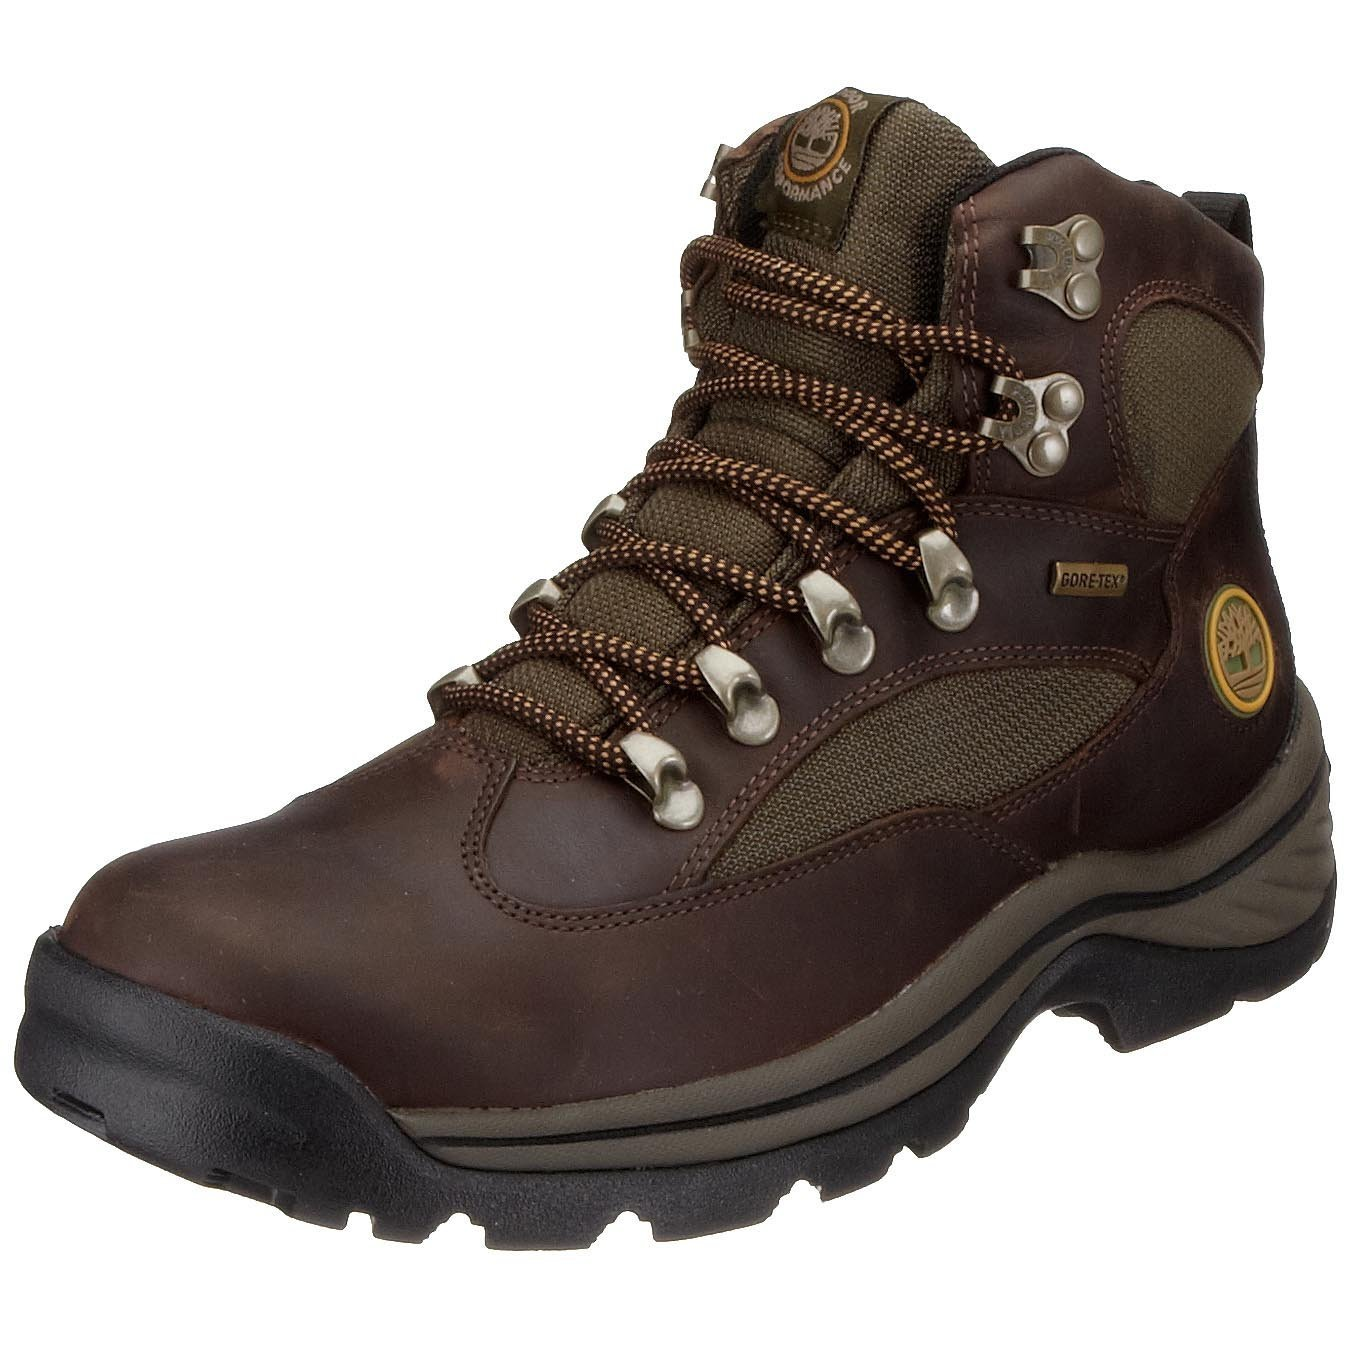 e1fc0dc75ea Amazon.com | Timberland Men's Chocorua Trail Gore-tex Mid Hiking ...